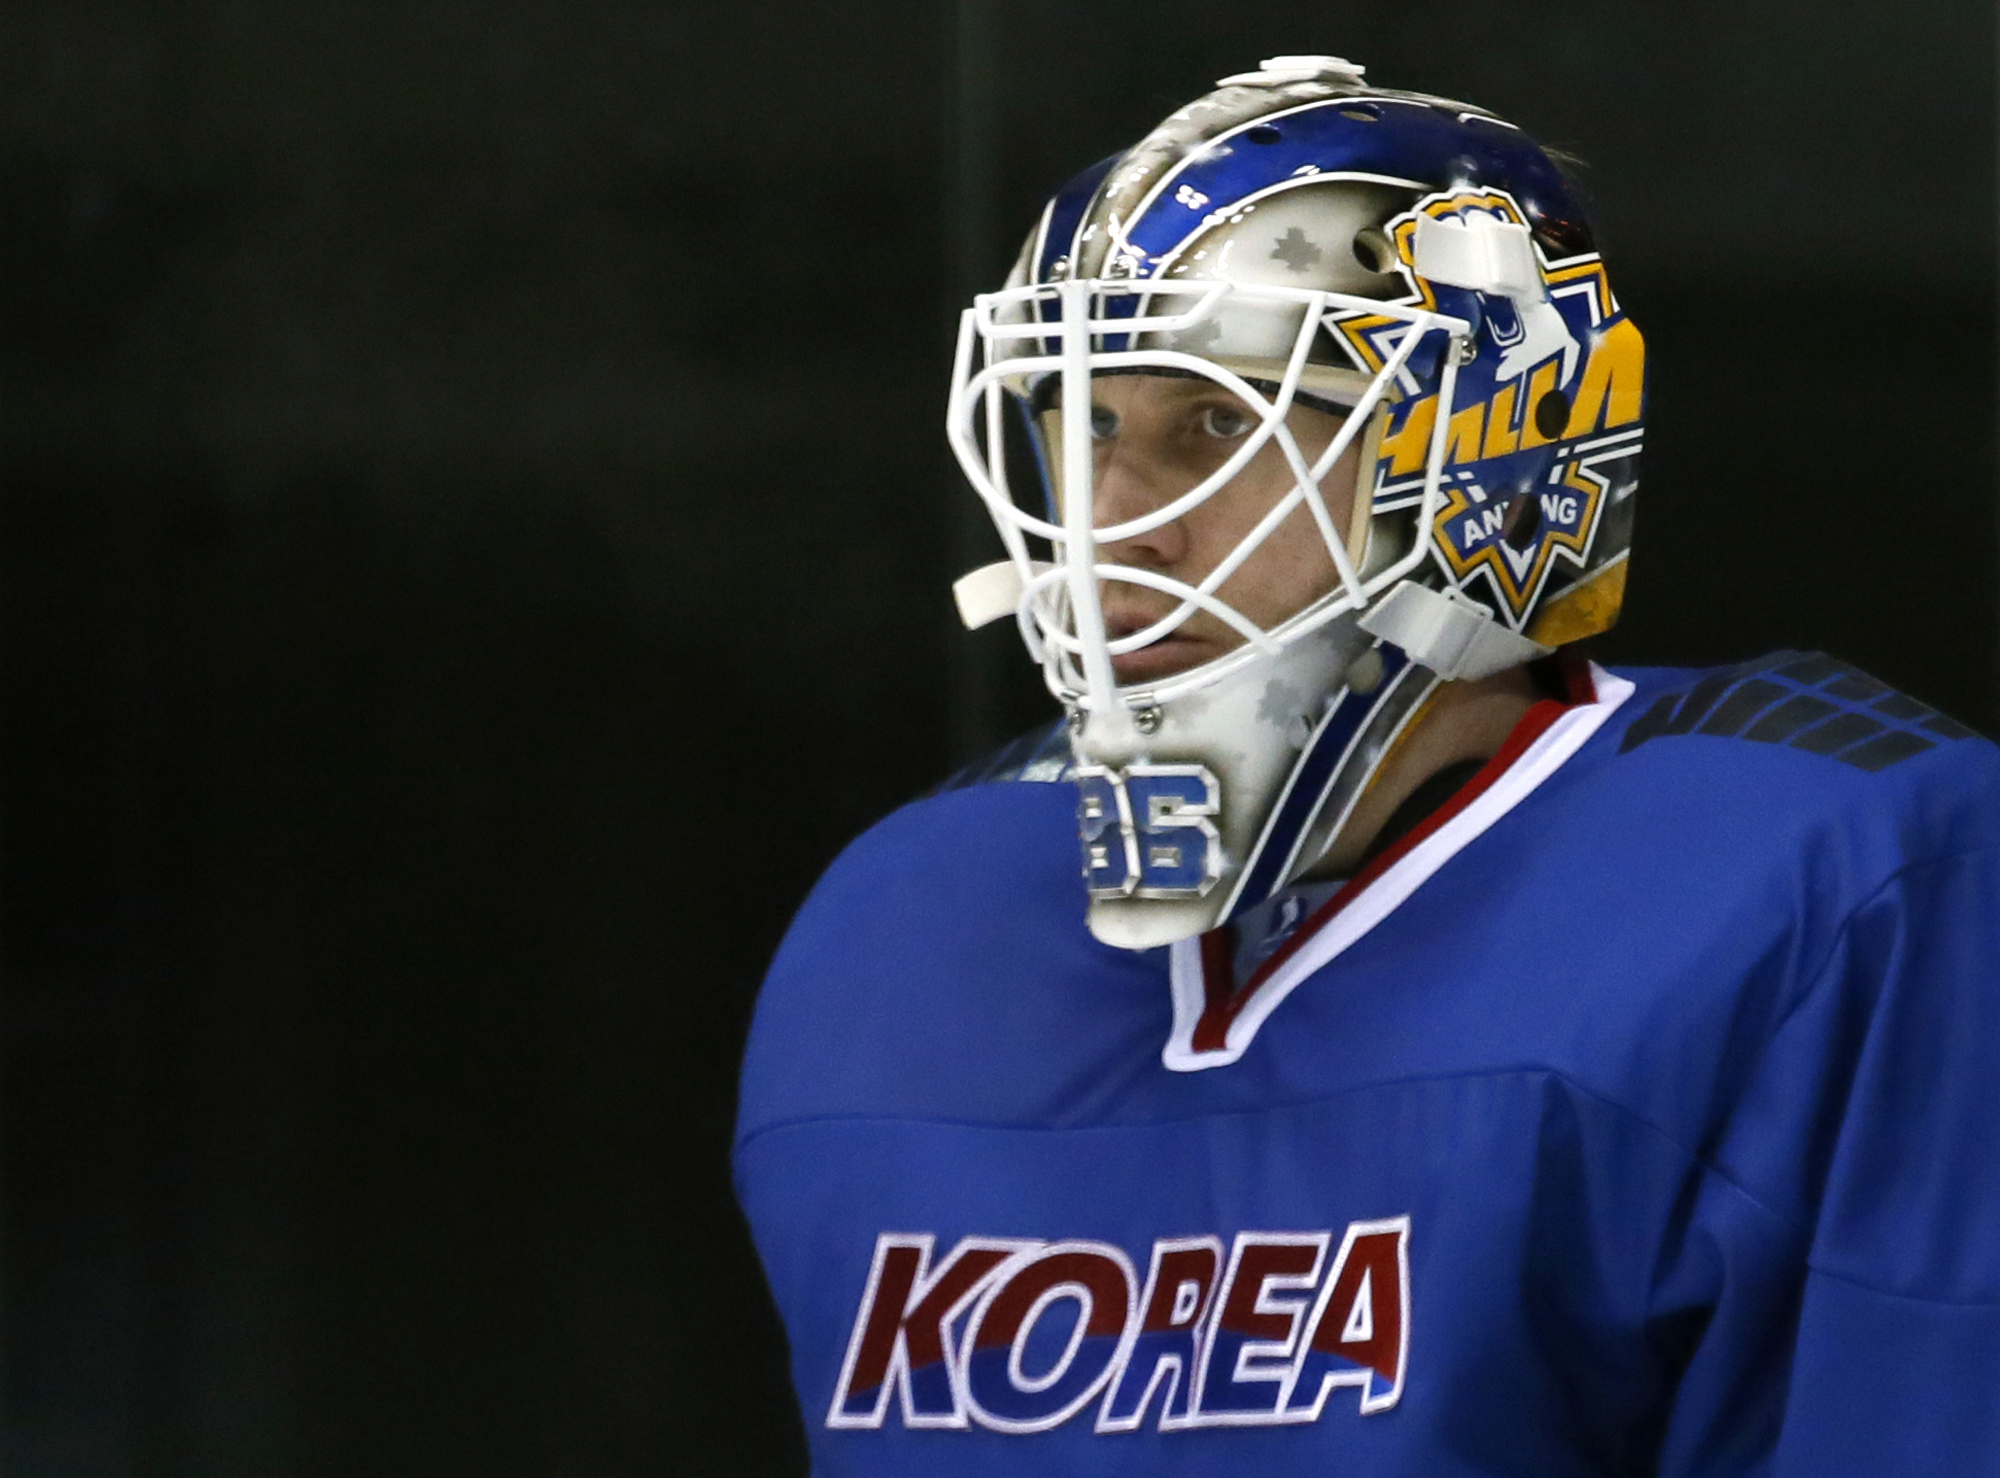 In this Feb. 22, 2017 photo, South Korea's goalkeeper Matt Dalton watches teammates' play in their ice hockey men's top division match against Kazakhstan at the Asian Winter Games in Sapporo, northern Japan. Growing up in rural southern Ontario, Dalton ne